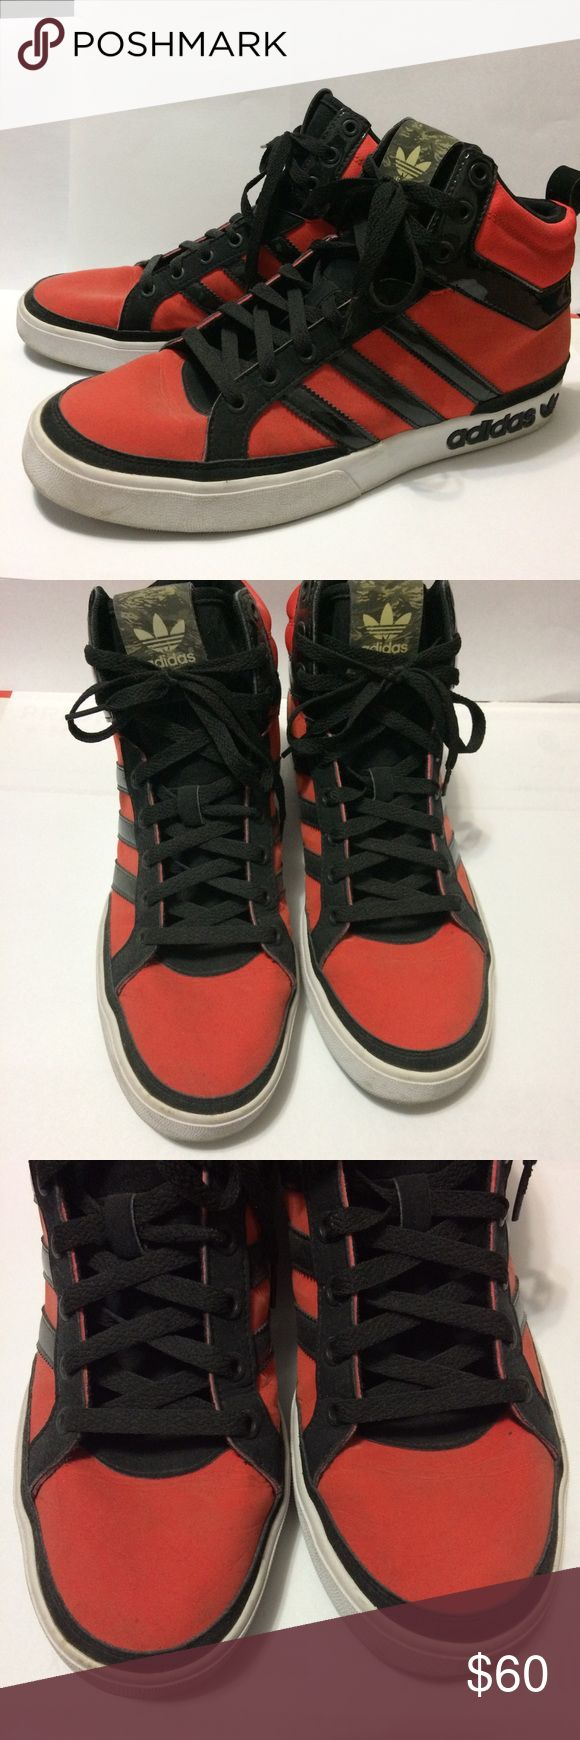 Adidas Originals Camo Pack Top Court Mid Lightly used red and black Adidas Originals Camo Pack Top Court Mid Shoes. 👞 This is a Men's Size 10. The coloring is a bit of a dusty red and the front part is slightly creased (shown in the photo). Adidas Shoes Sneakers